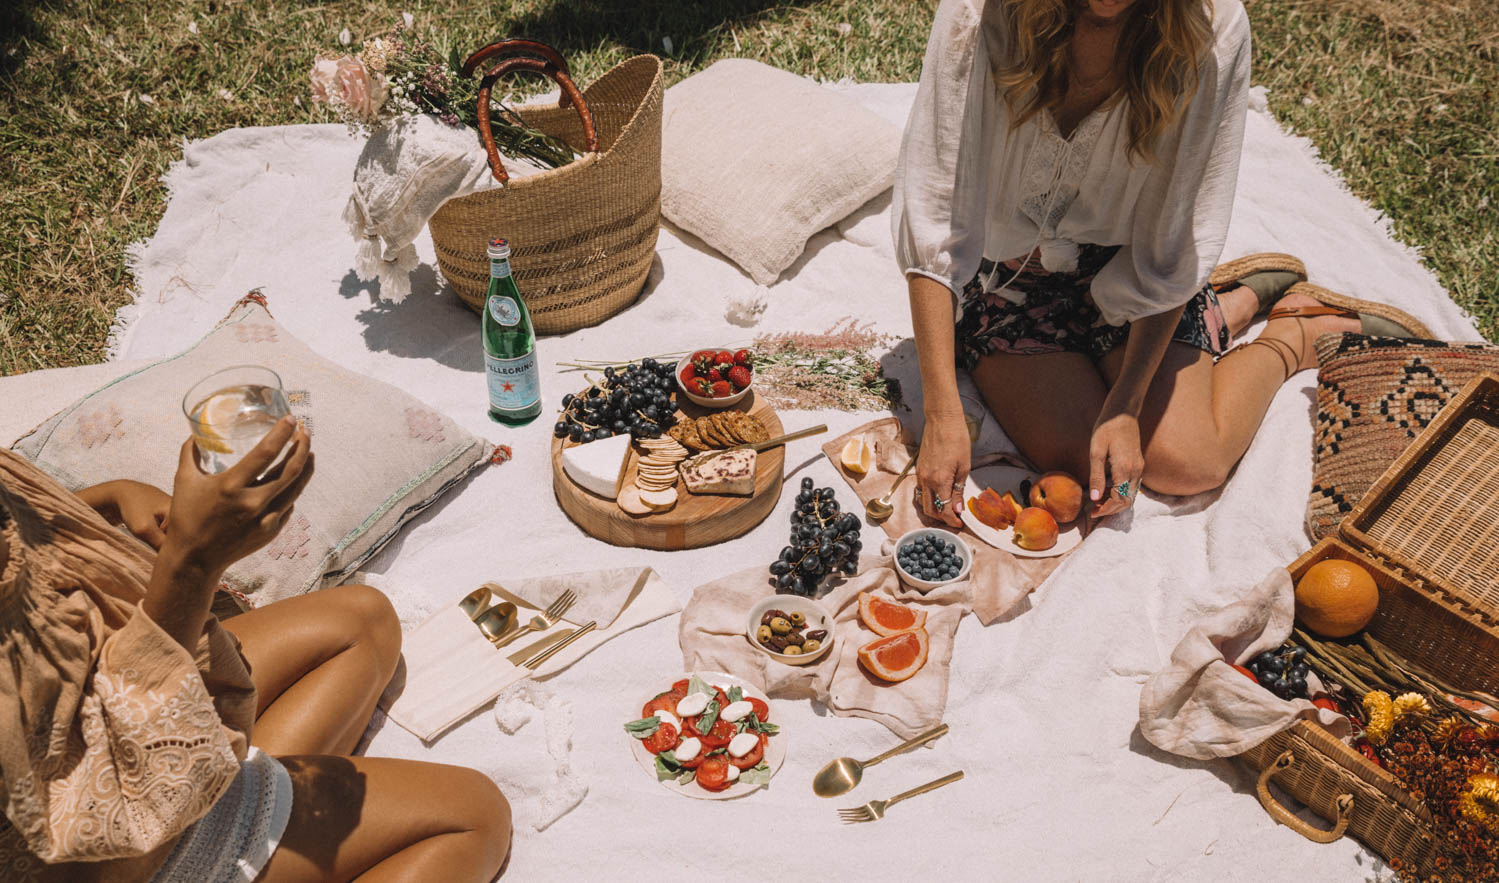 summer picnic party idea #picnicparty #picnic